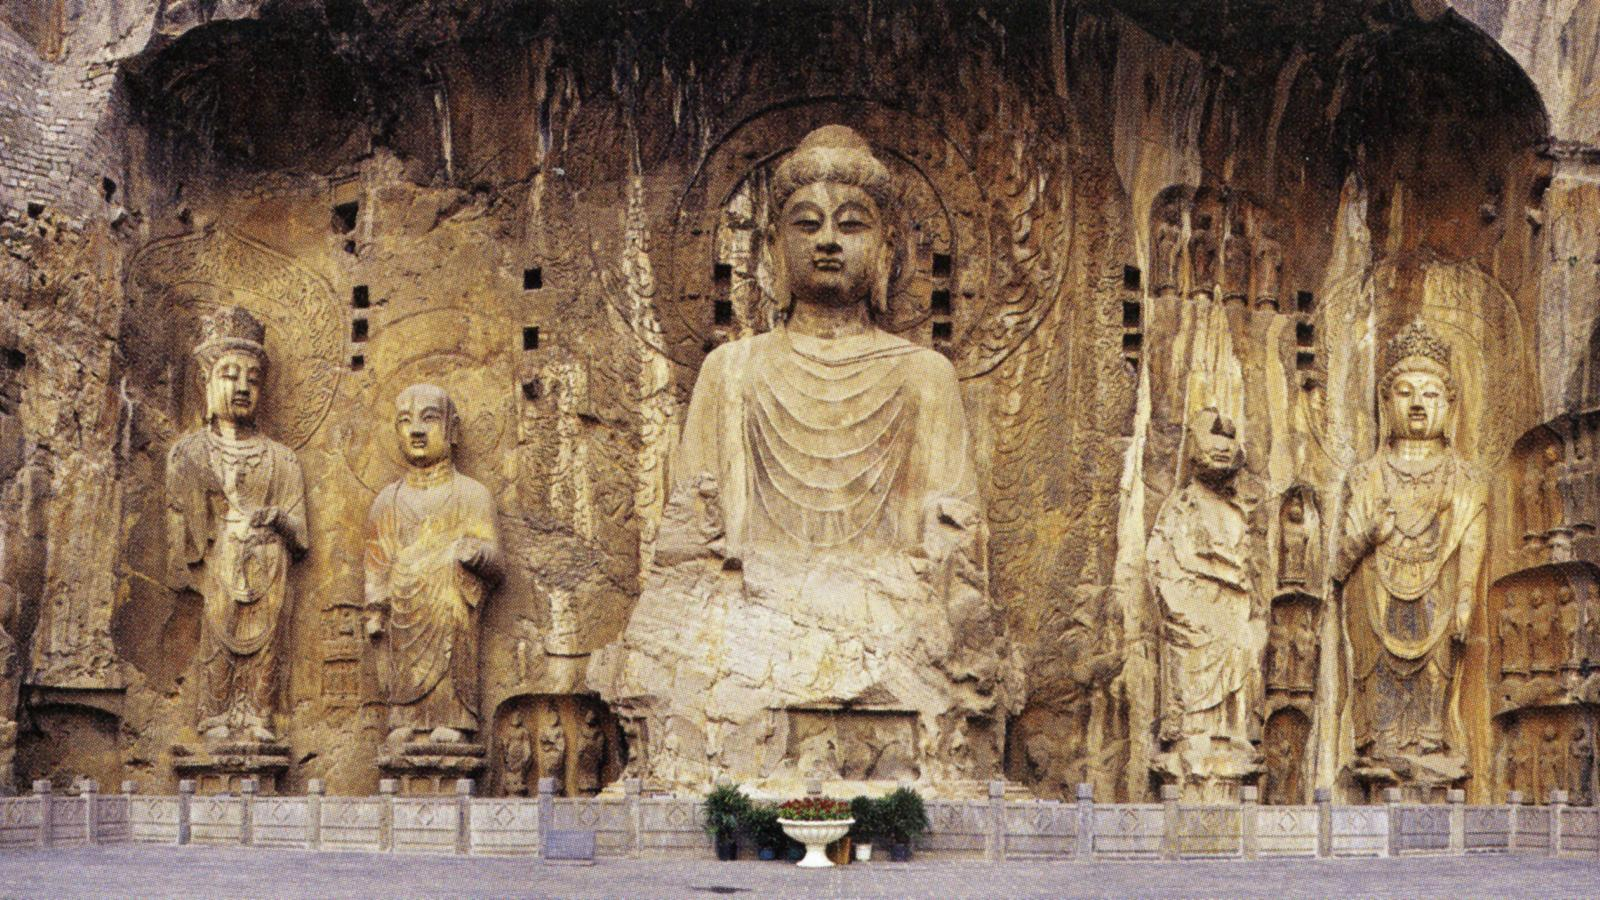 Tang dynasty, 660-676. Limestone, height 56' (17m). Fengxian Temple, Cave 19, Longmen Grottoes, Luoyang, Henan province.